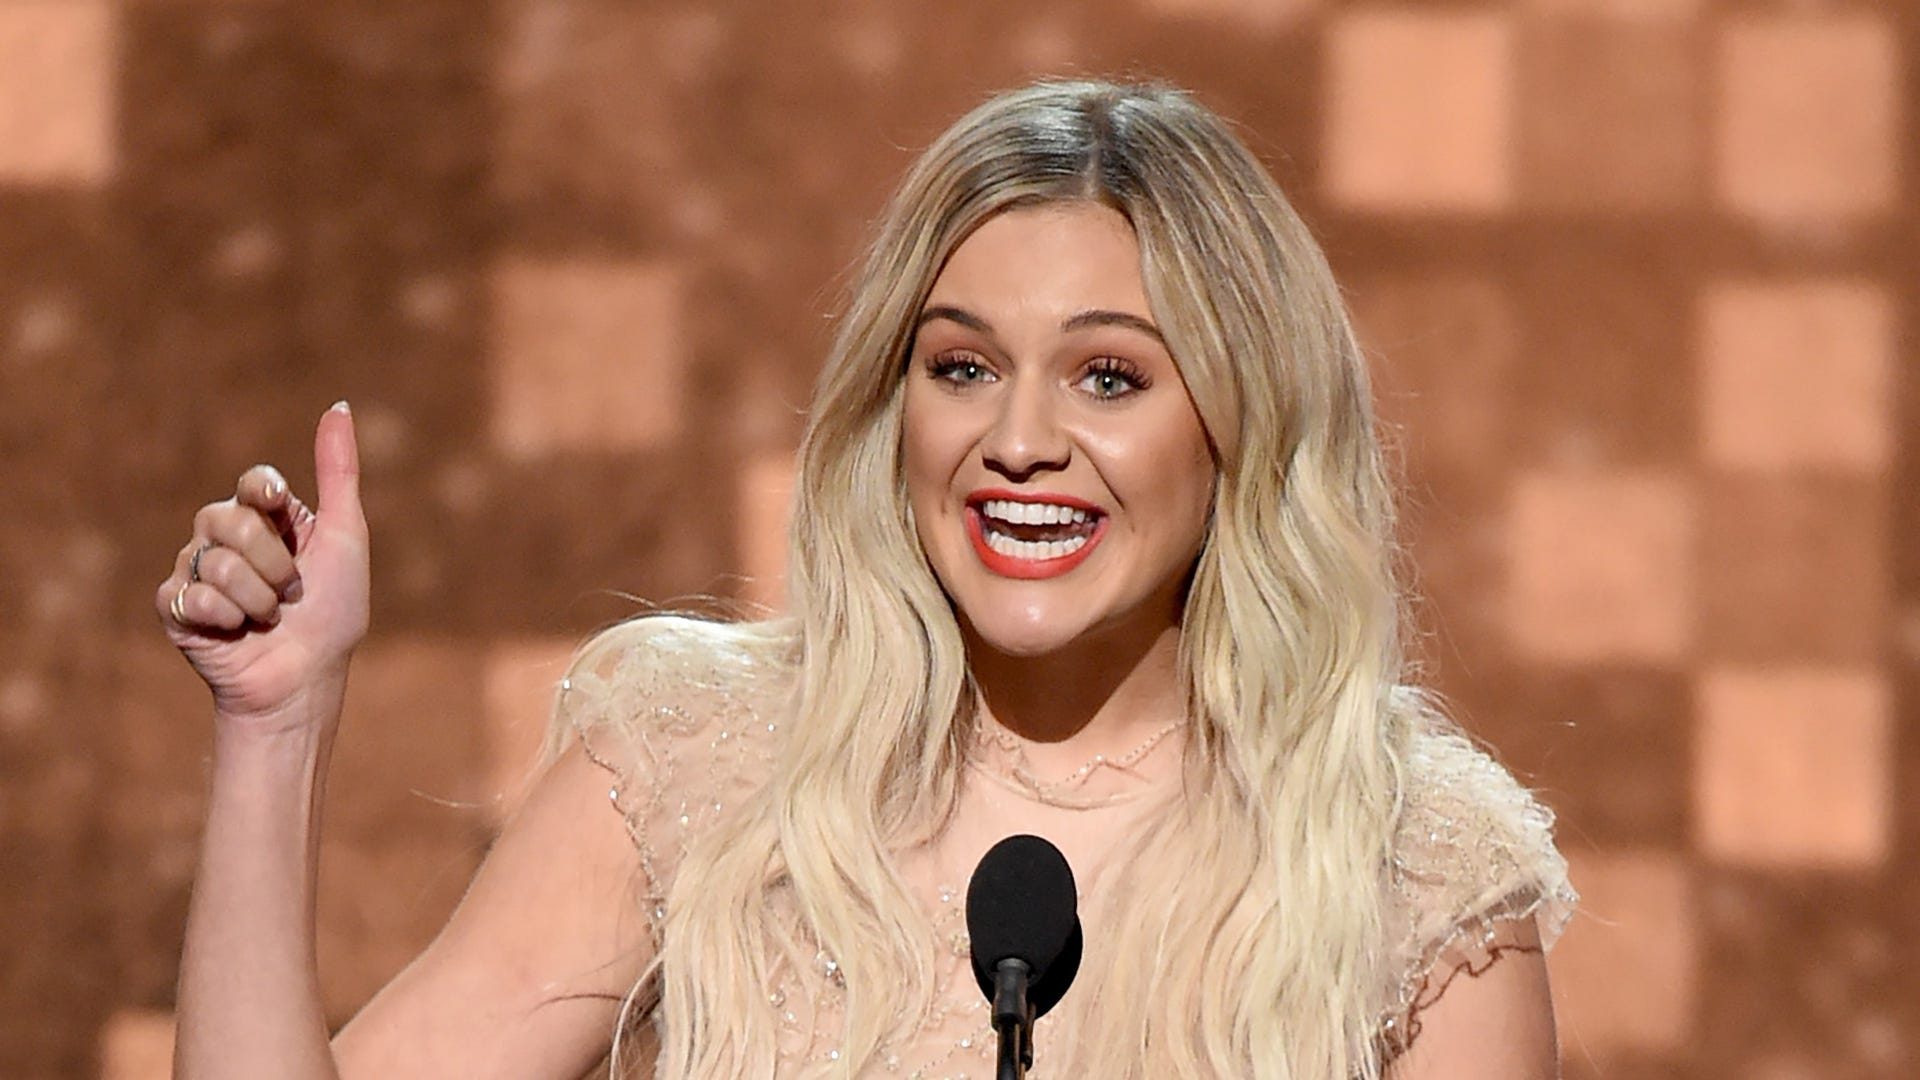 What Country singers would Kelsea Ballerini choose for an all-female cabinet and presidency?